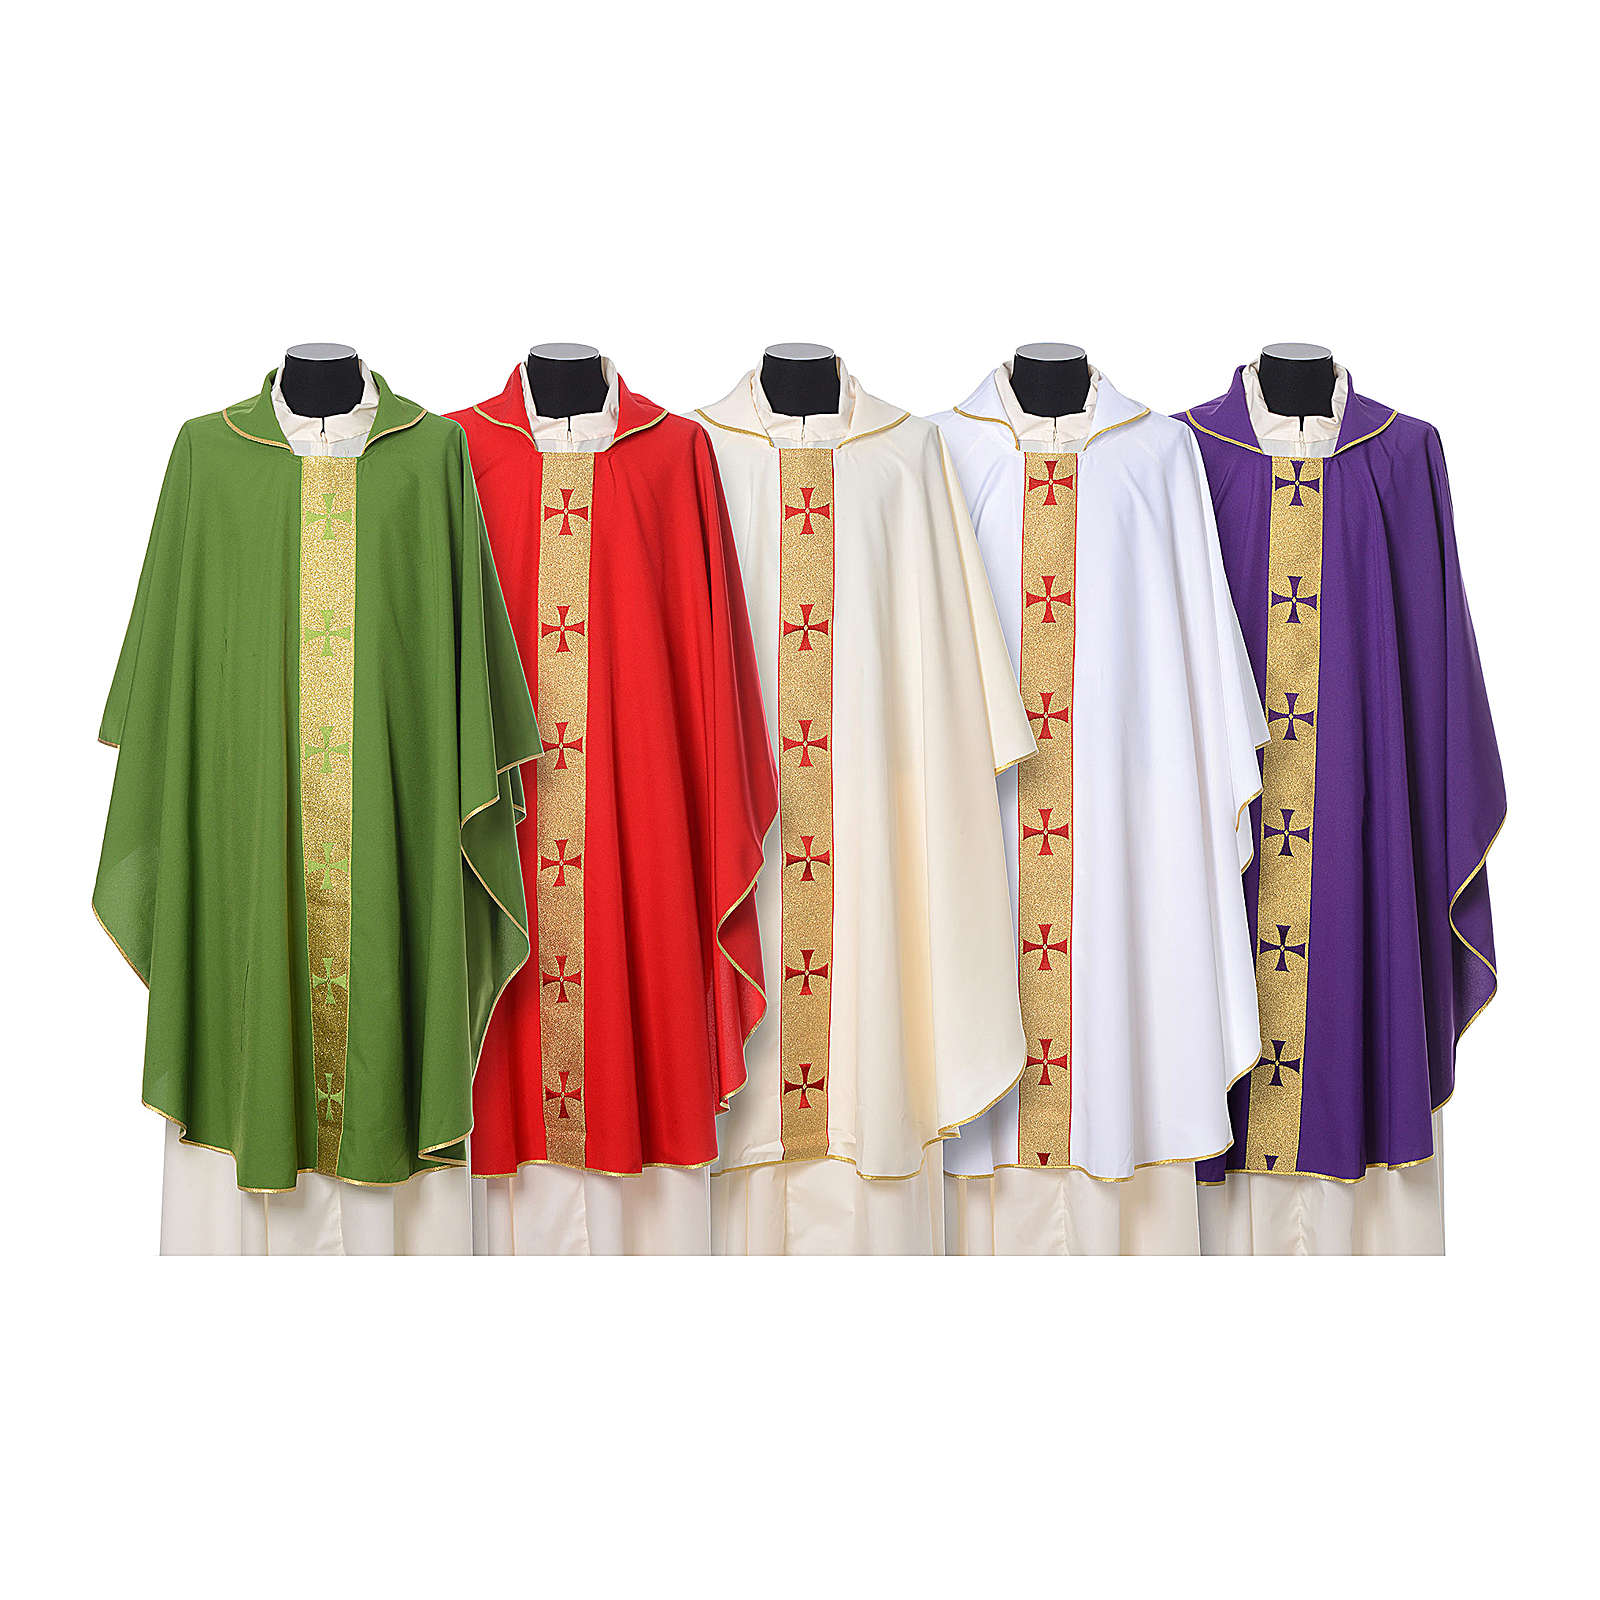 Chasuble with embroidered crosses on front in Vatican fabric, 100% polyester 4